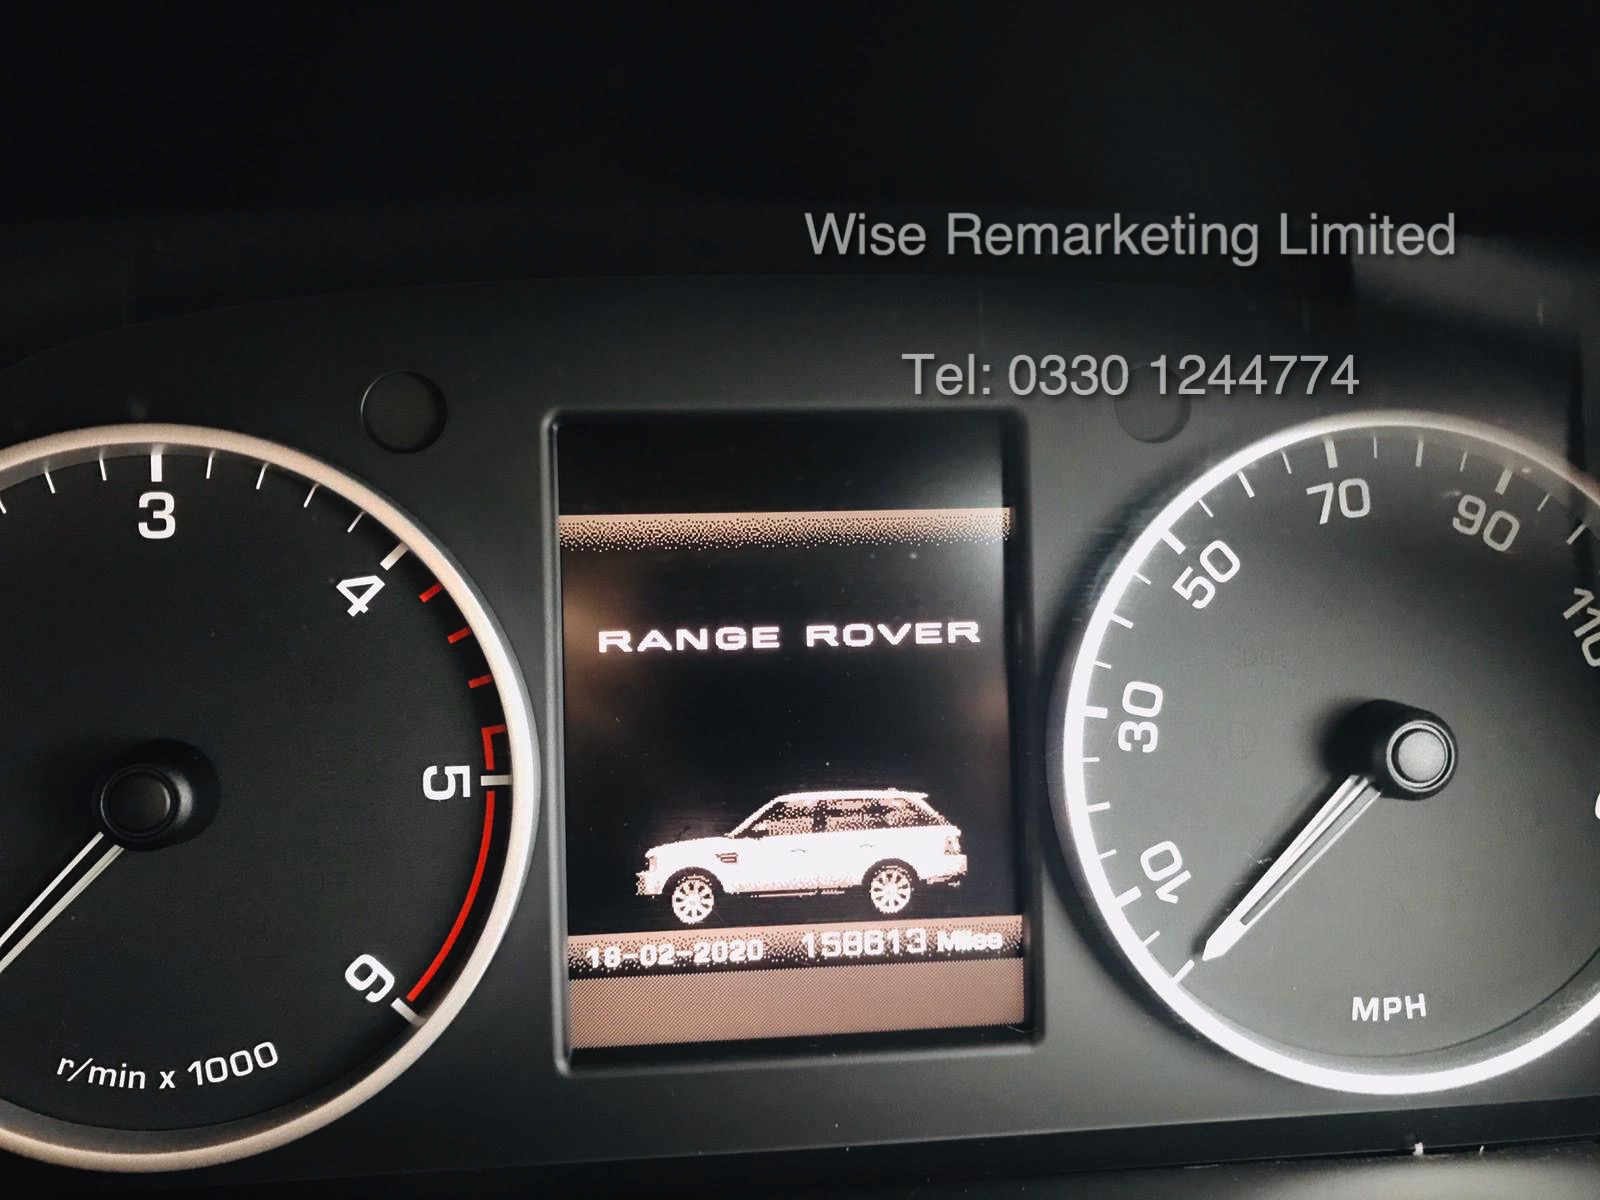 Range Rover Sport SE 3.0 TDV6 Automatic - 2011 11 Reg - 1 Keeper From New - Service History - Image 21 of 21